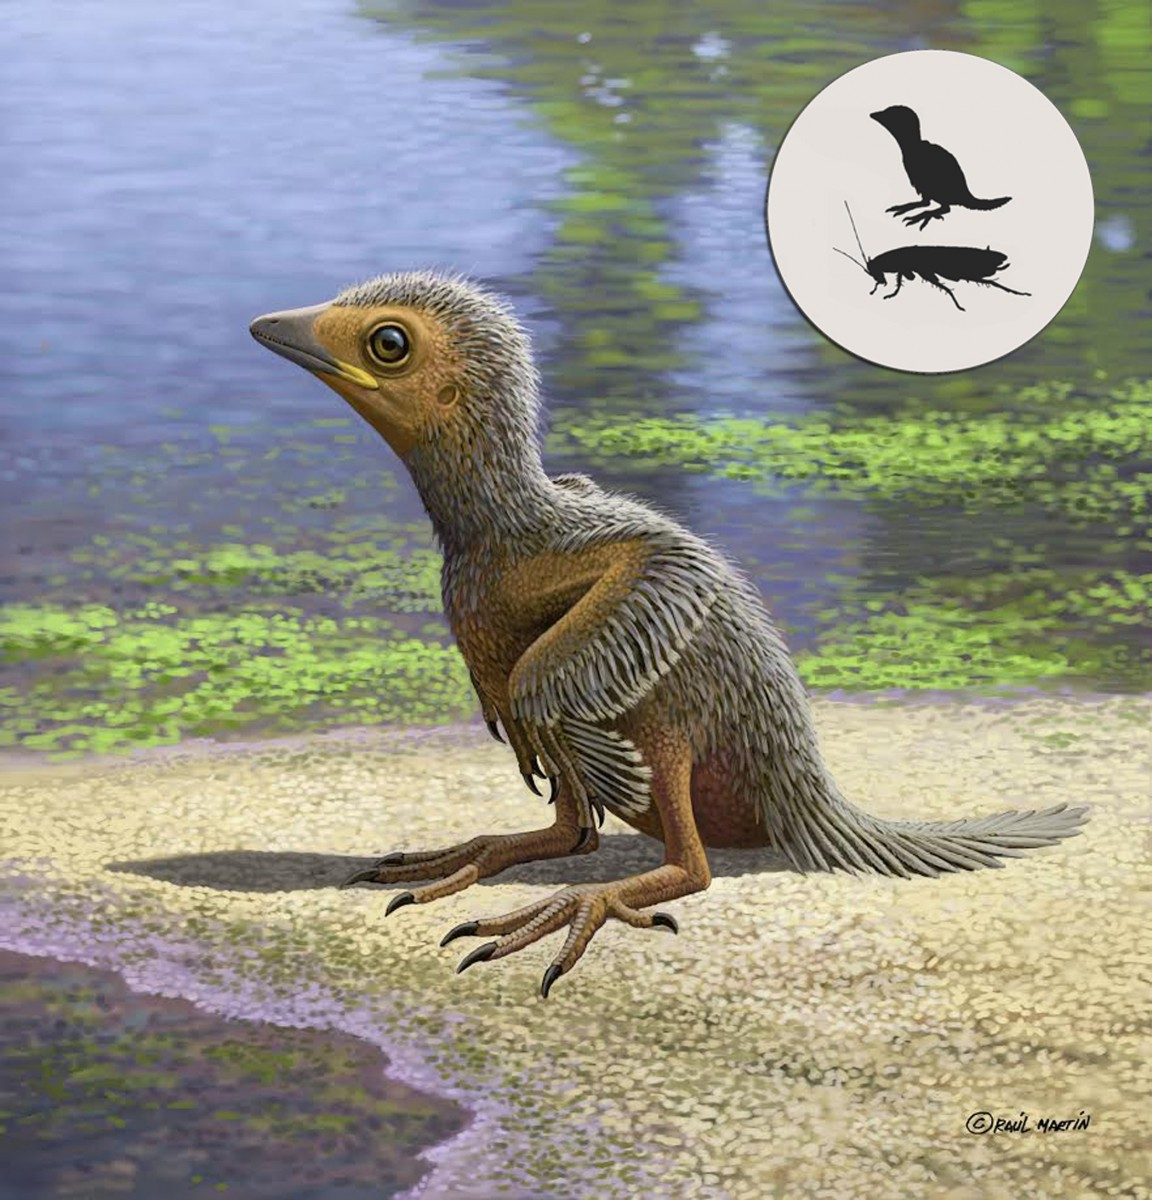 Artist impression of Enantiornithes